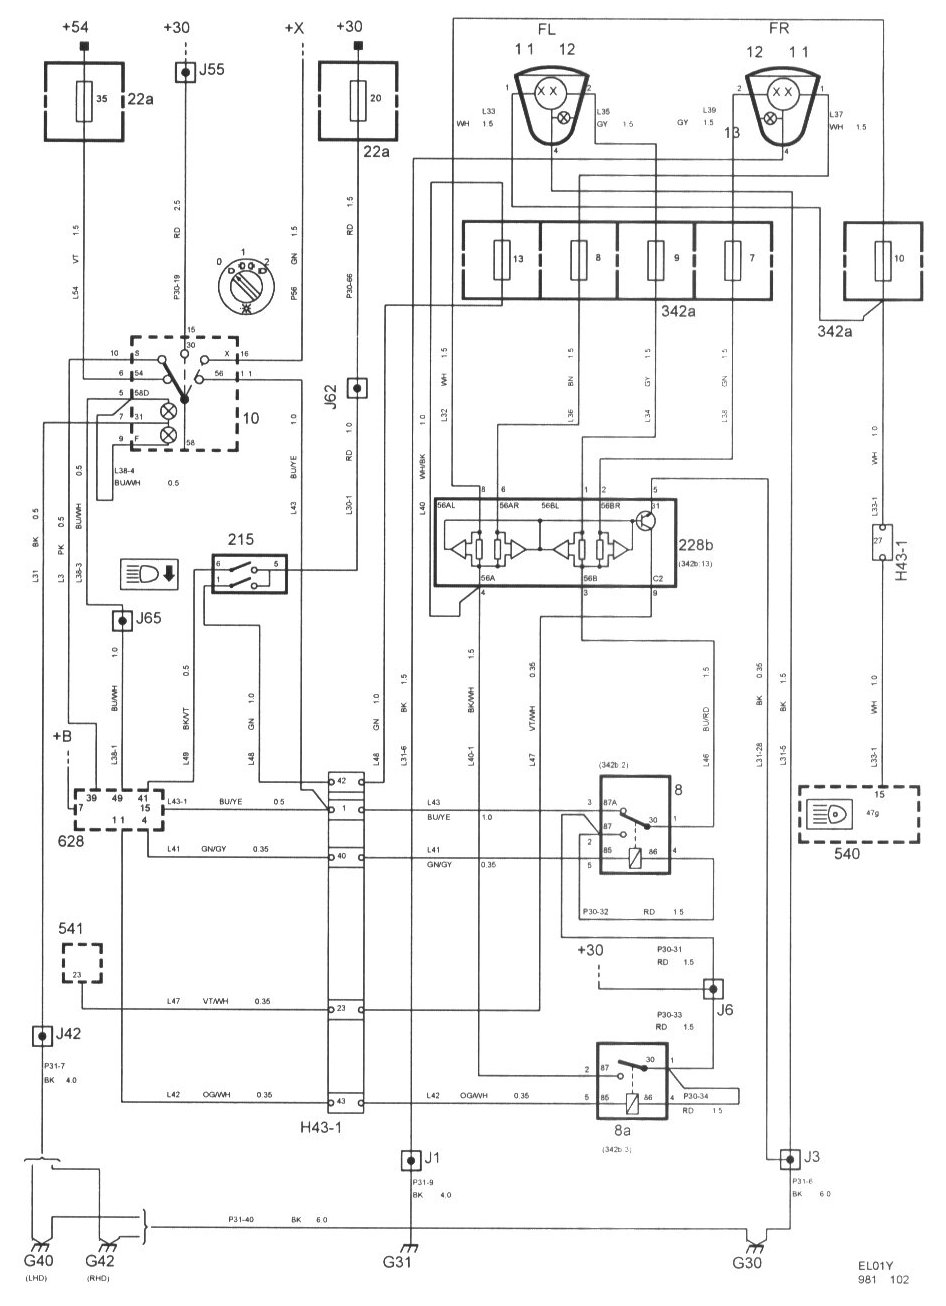 Wiring Diagram On 2001 Saab Start Building A Engine 2000 9 5 Schematic Another Blog About U2022 Rh Ok2 Infoservice Ru 85 900 Turbo Alarm 1995